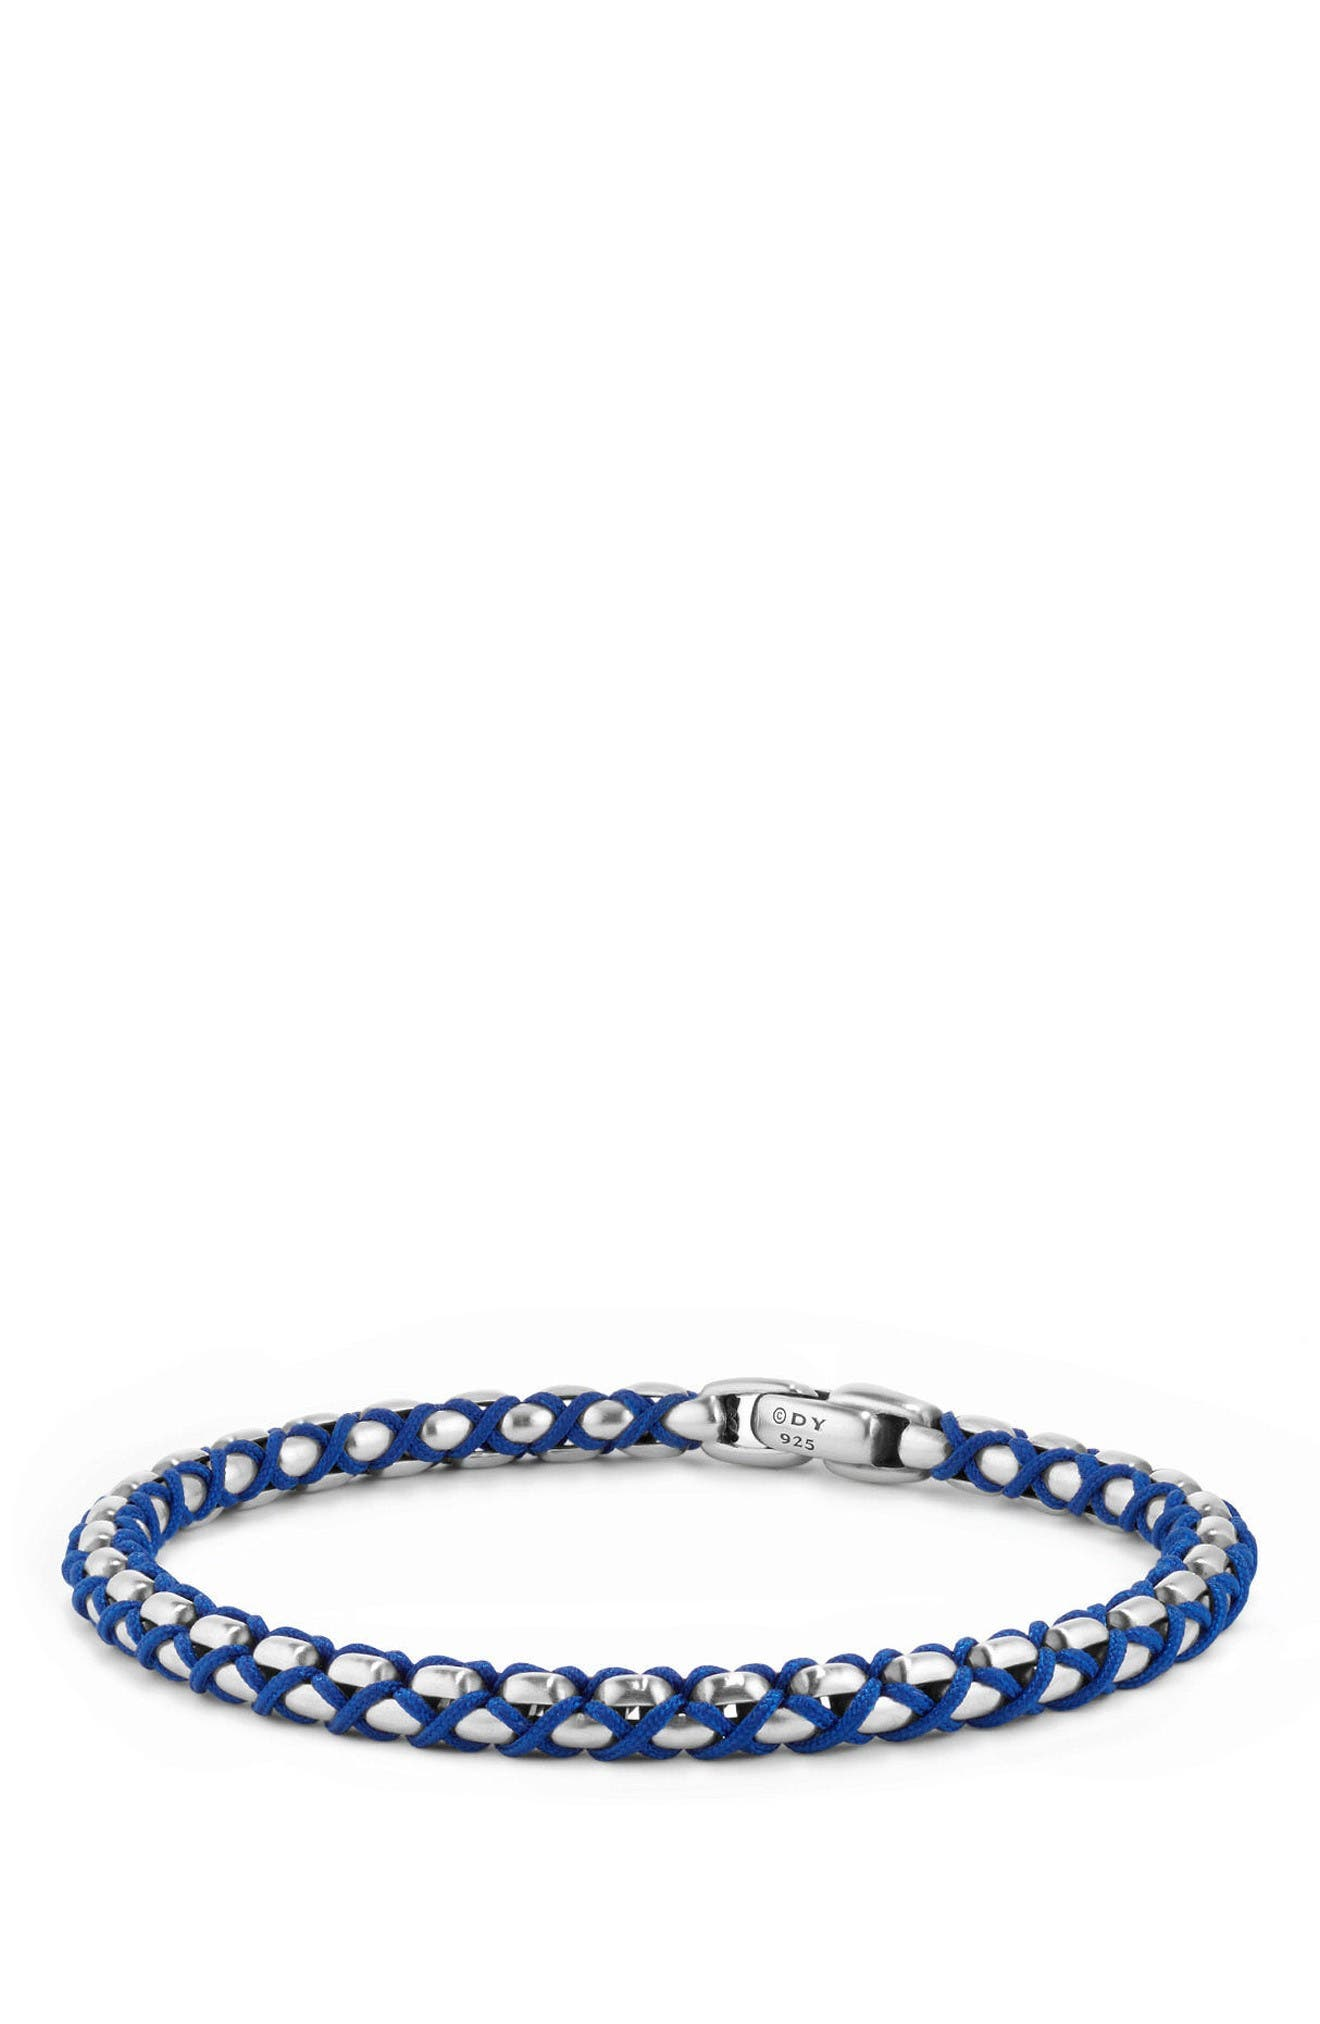 Main Image - David Yurman Chain Woven Bracelet